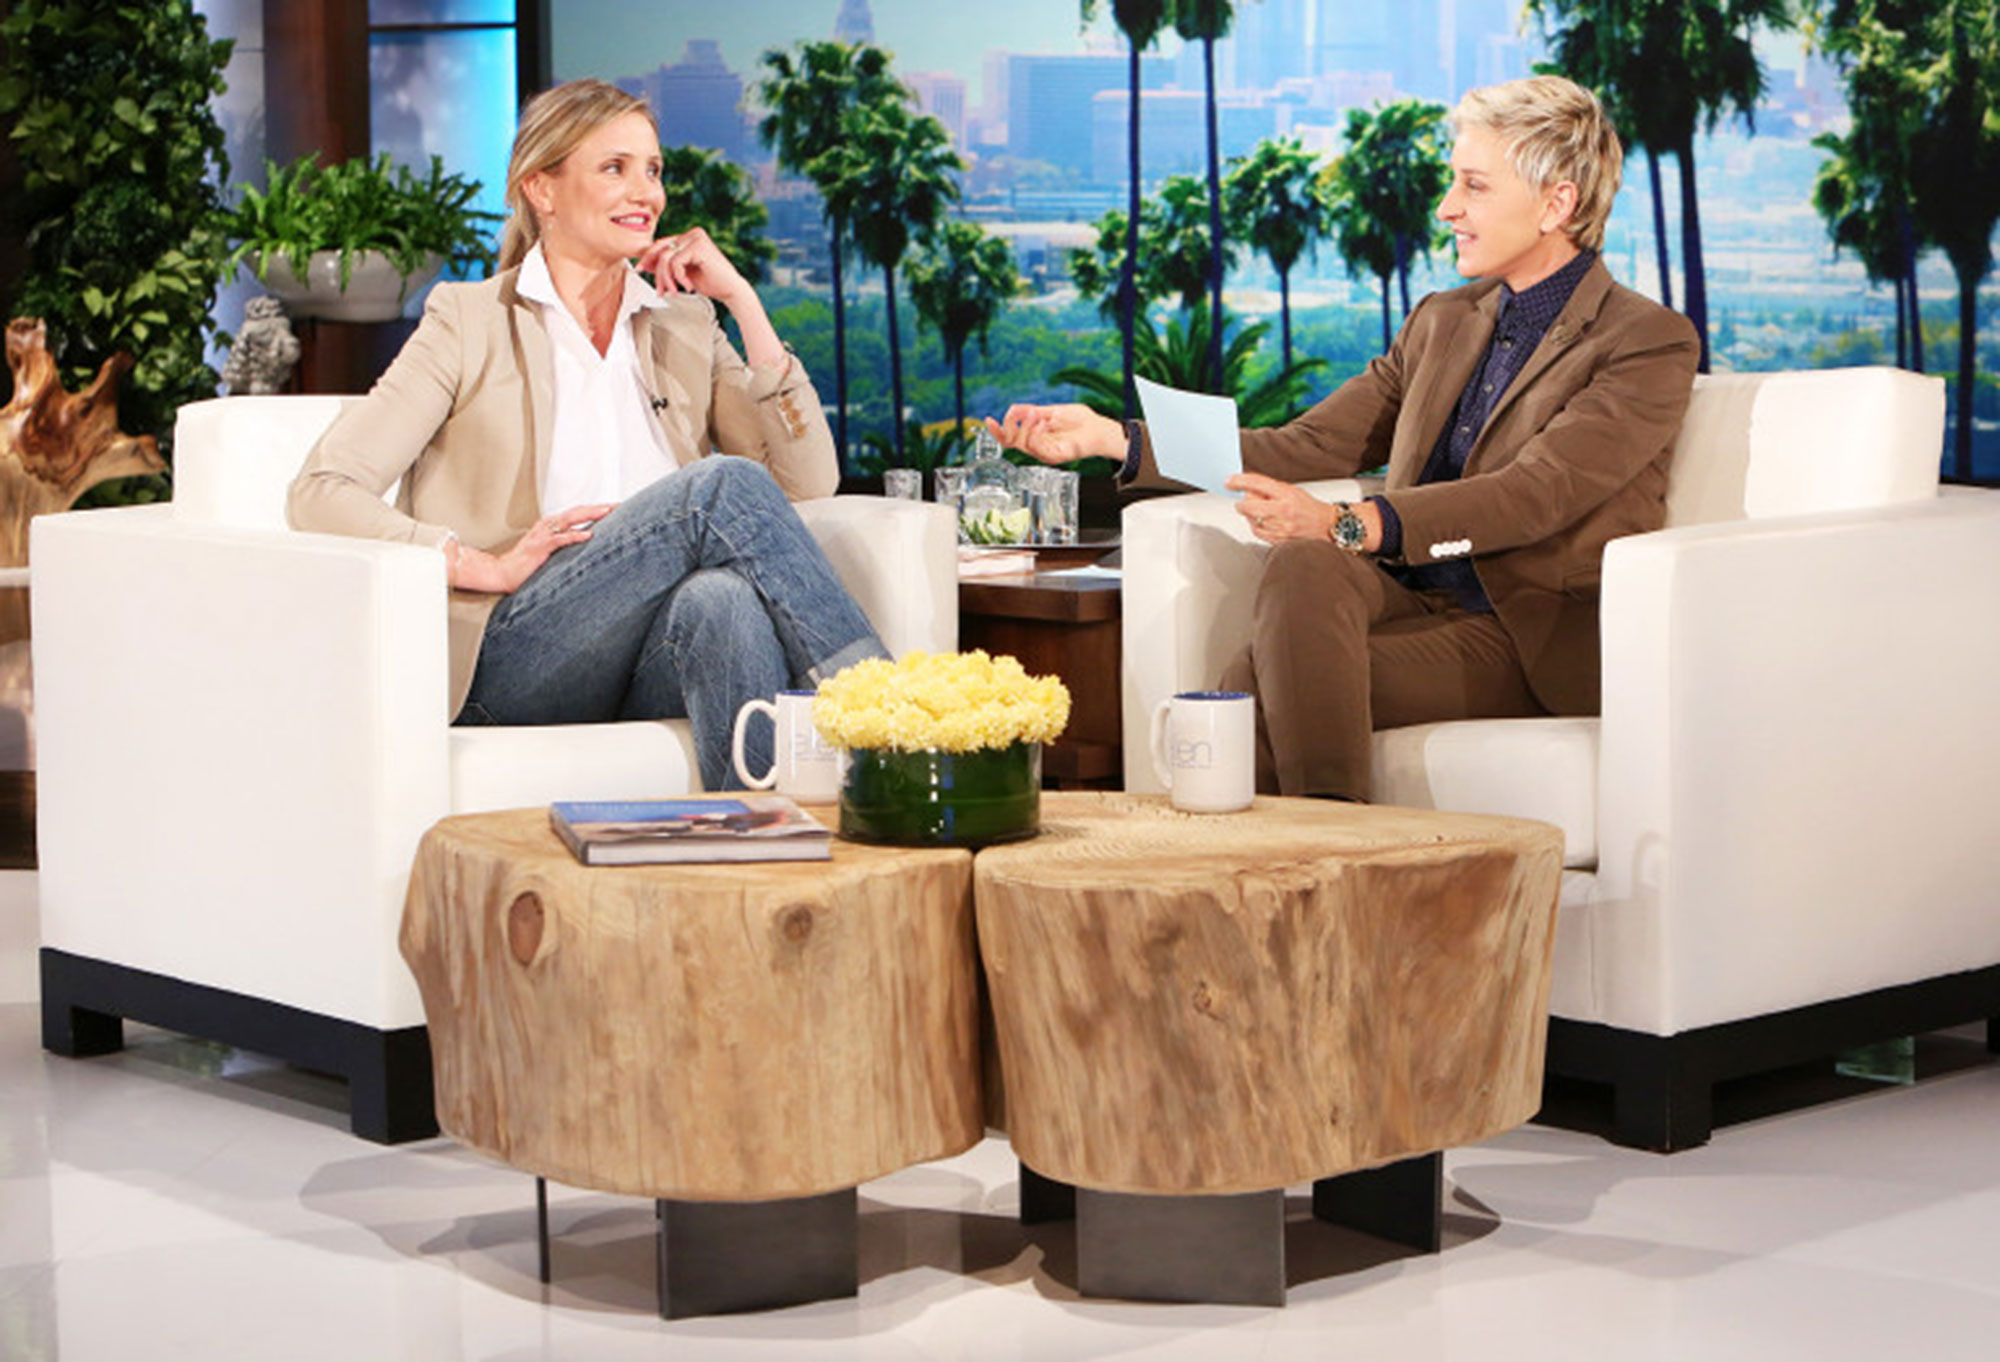 Who is cameron diaz dating now 2020